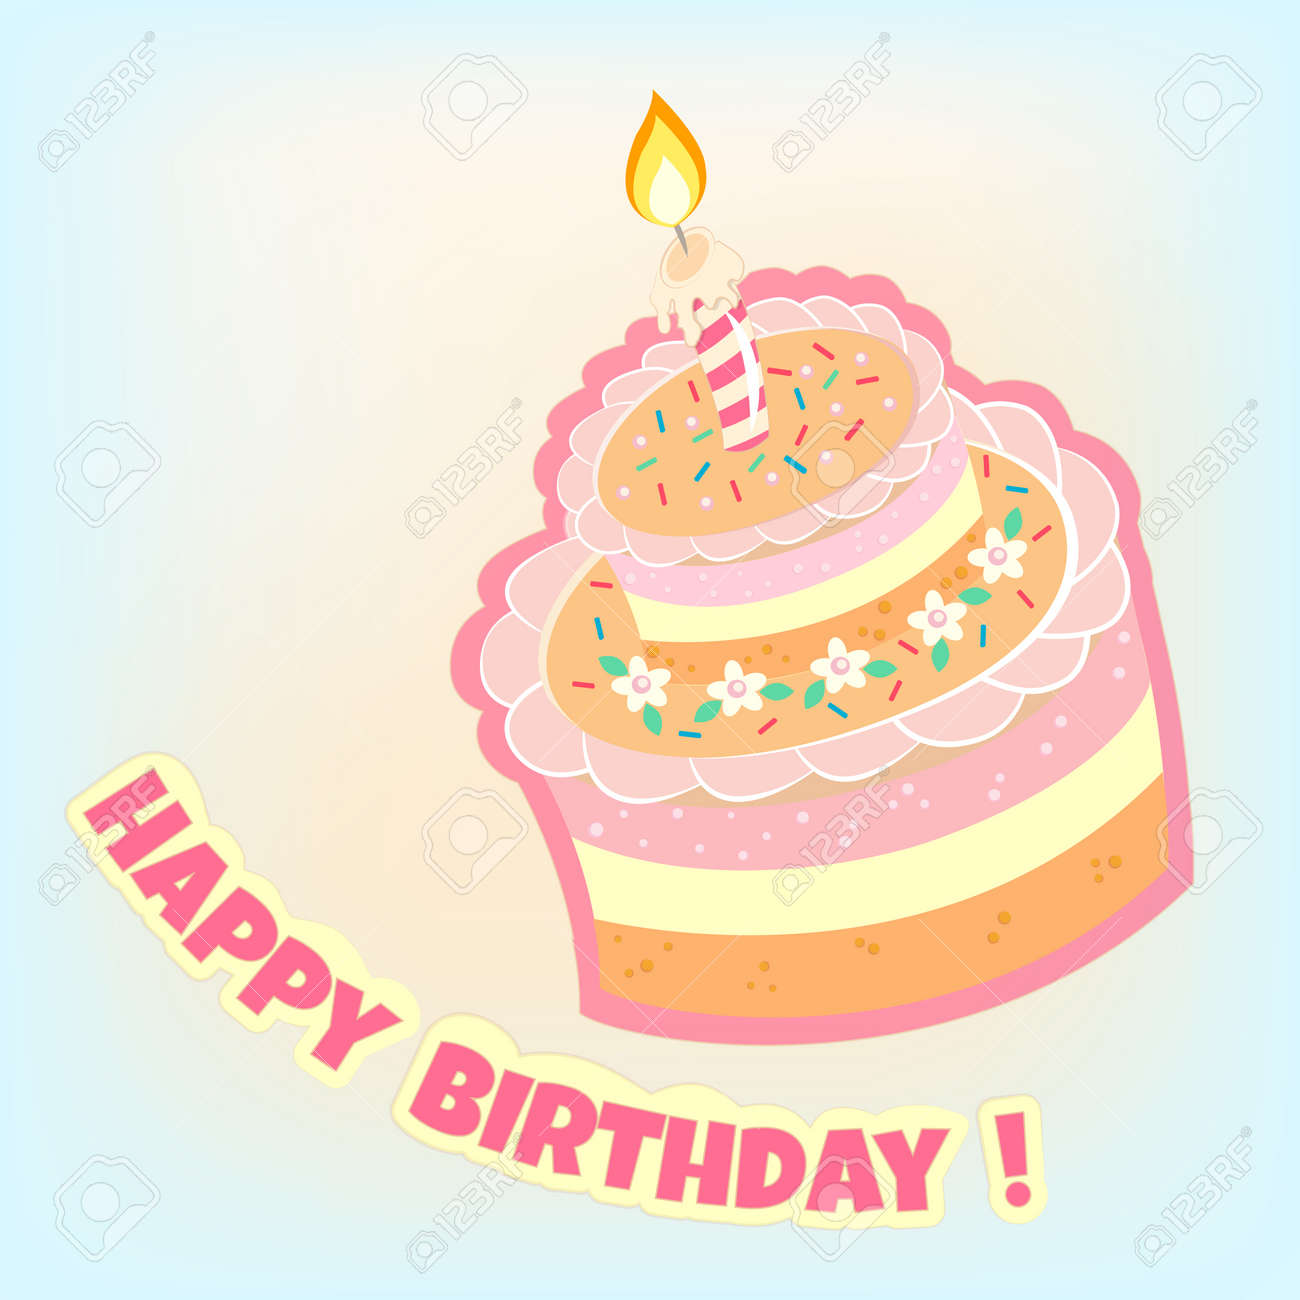 Happy Birthday Card Birthday Cake Vector Illustration EPS10